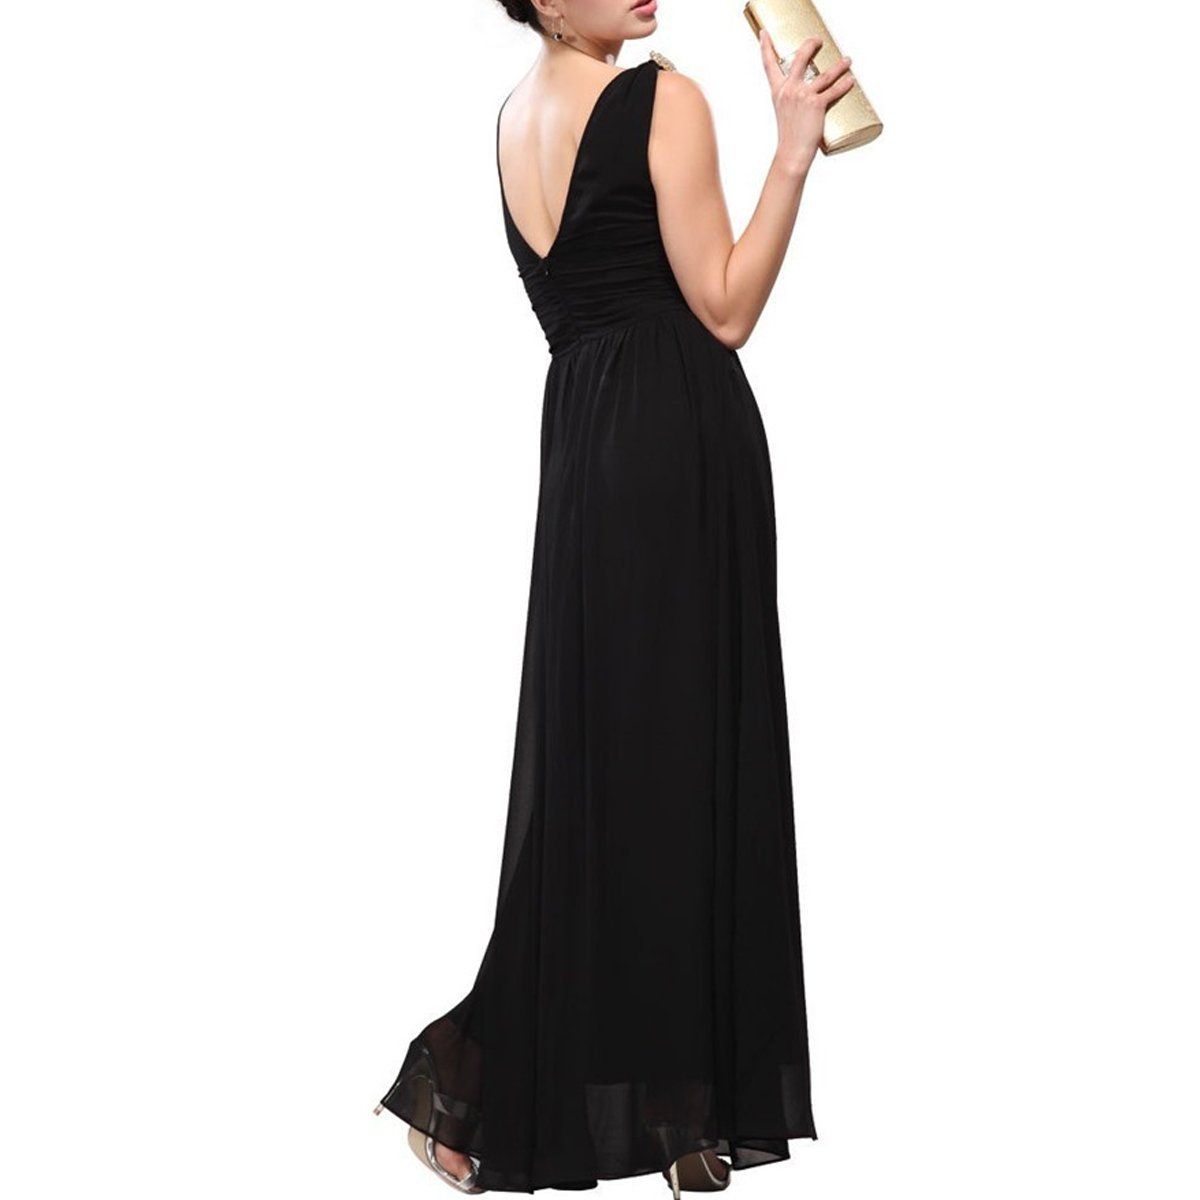 KAXIDY Ladies Evening Dresses Wedding Holiday Beach Maxi Gowns: Amazon.co.uk: Clothing